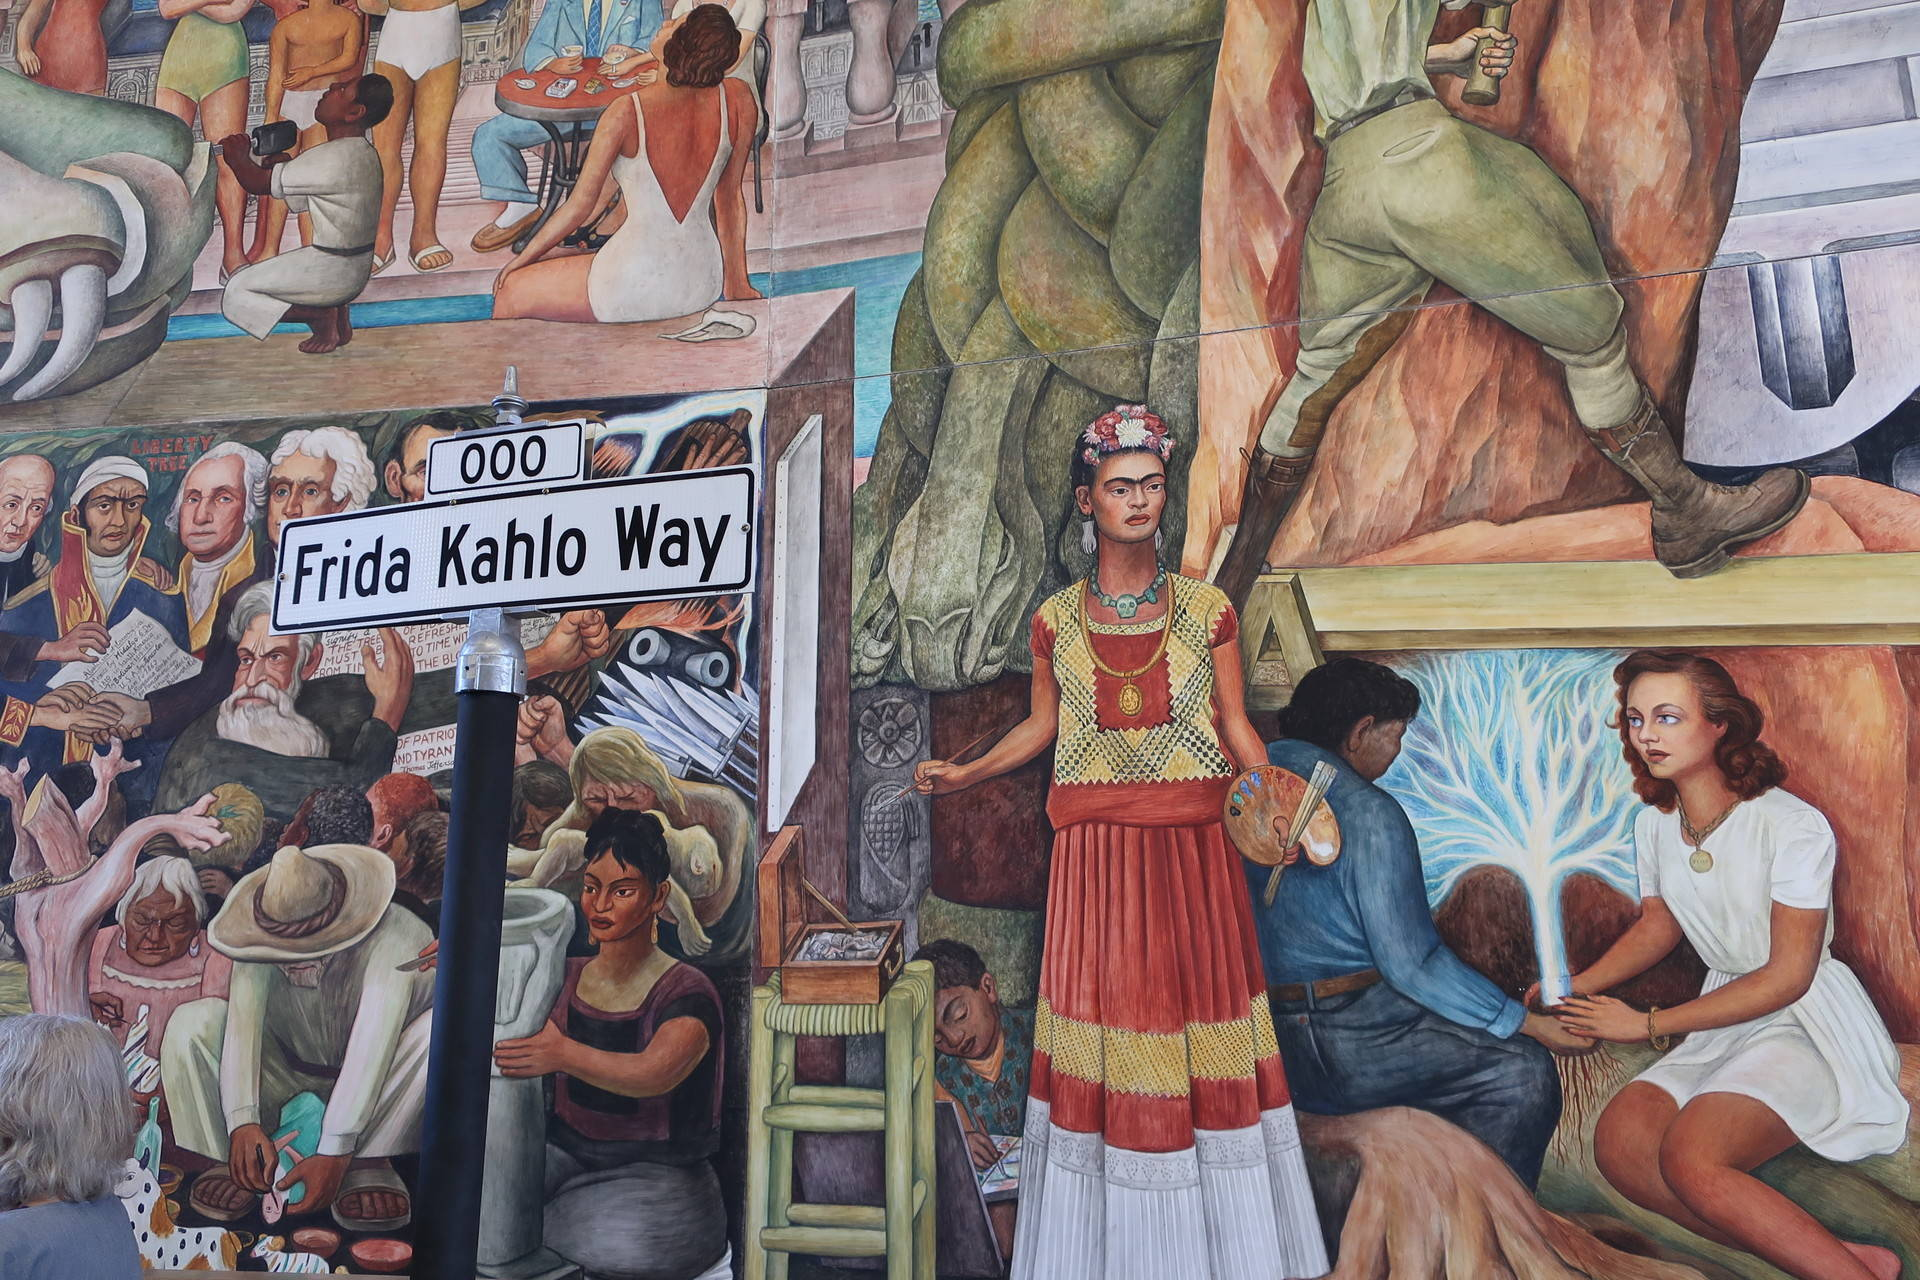 The newly named Frida Kahlo Way runs through the center of the City College of San Francisco's Ocean campus. Michelle Wiley/KQED